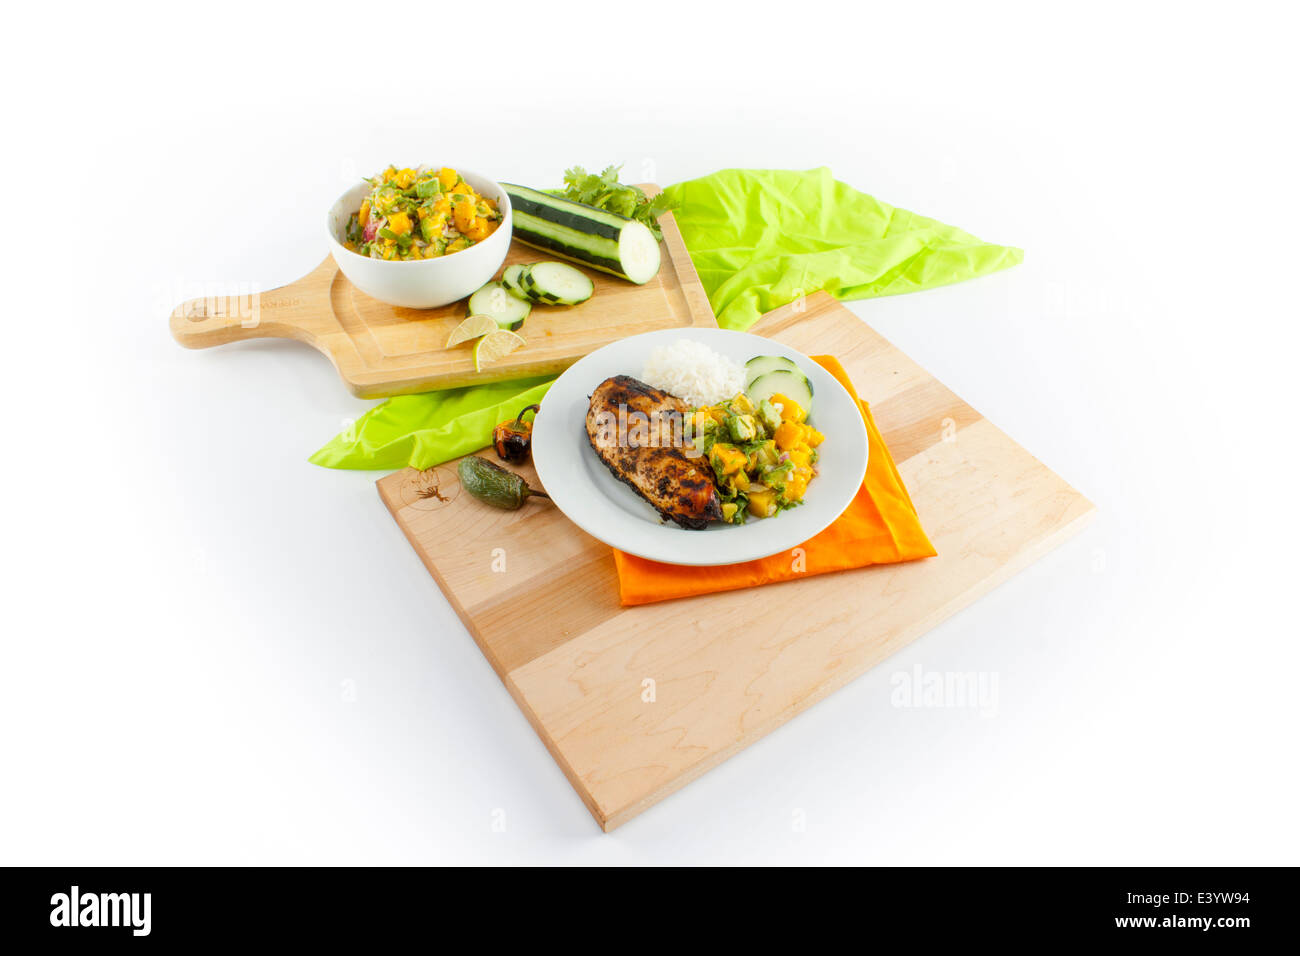 Layout of chicken meal on cutting boards. Sliced cucumber, mangos, and salad bowl. Optional cut out. - Stock Image